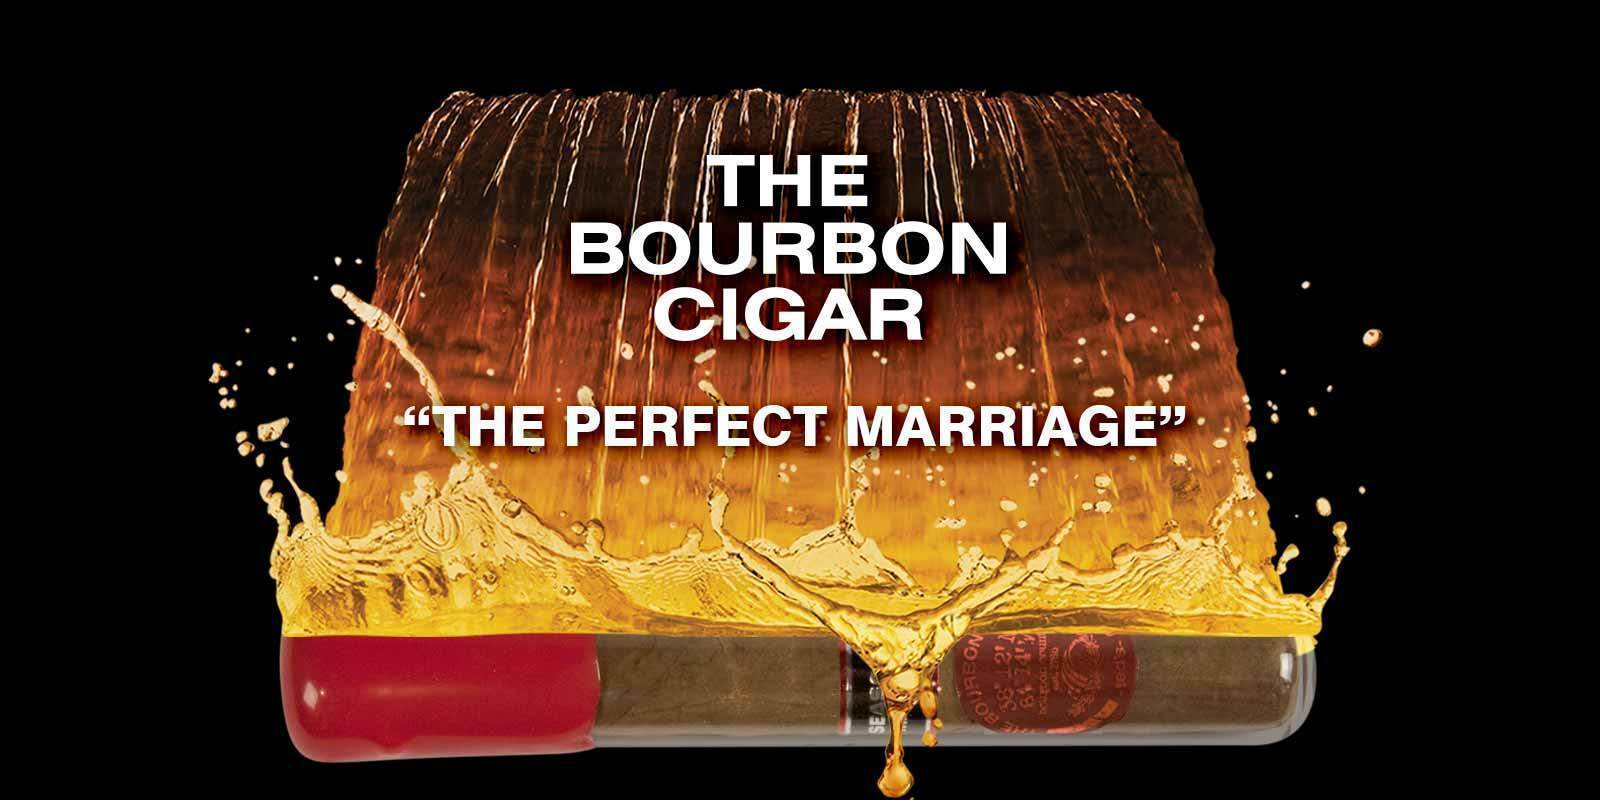 The Bourbon Cigar